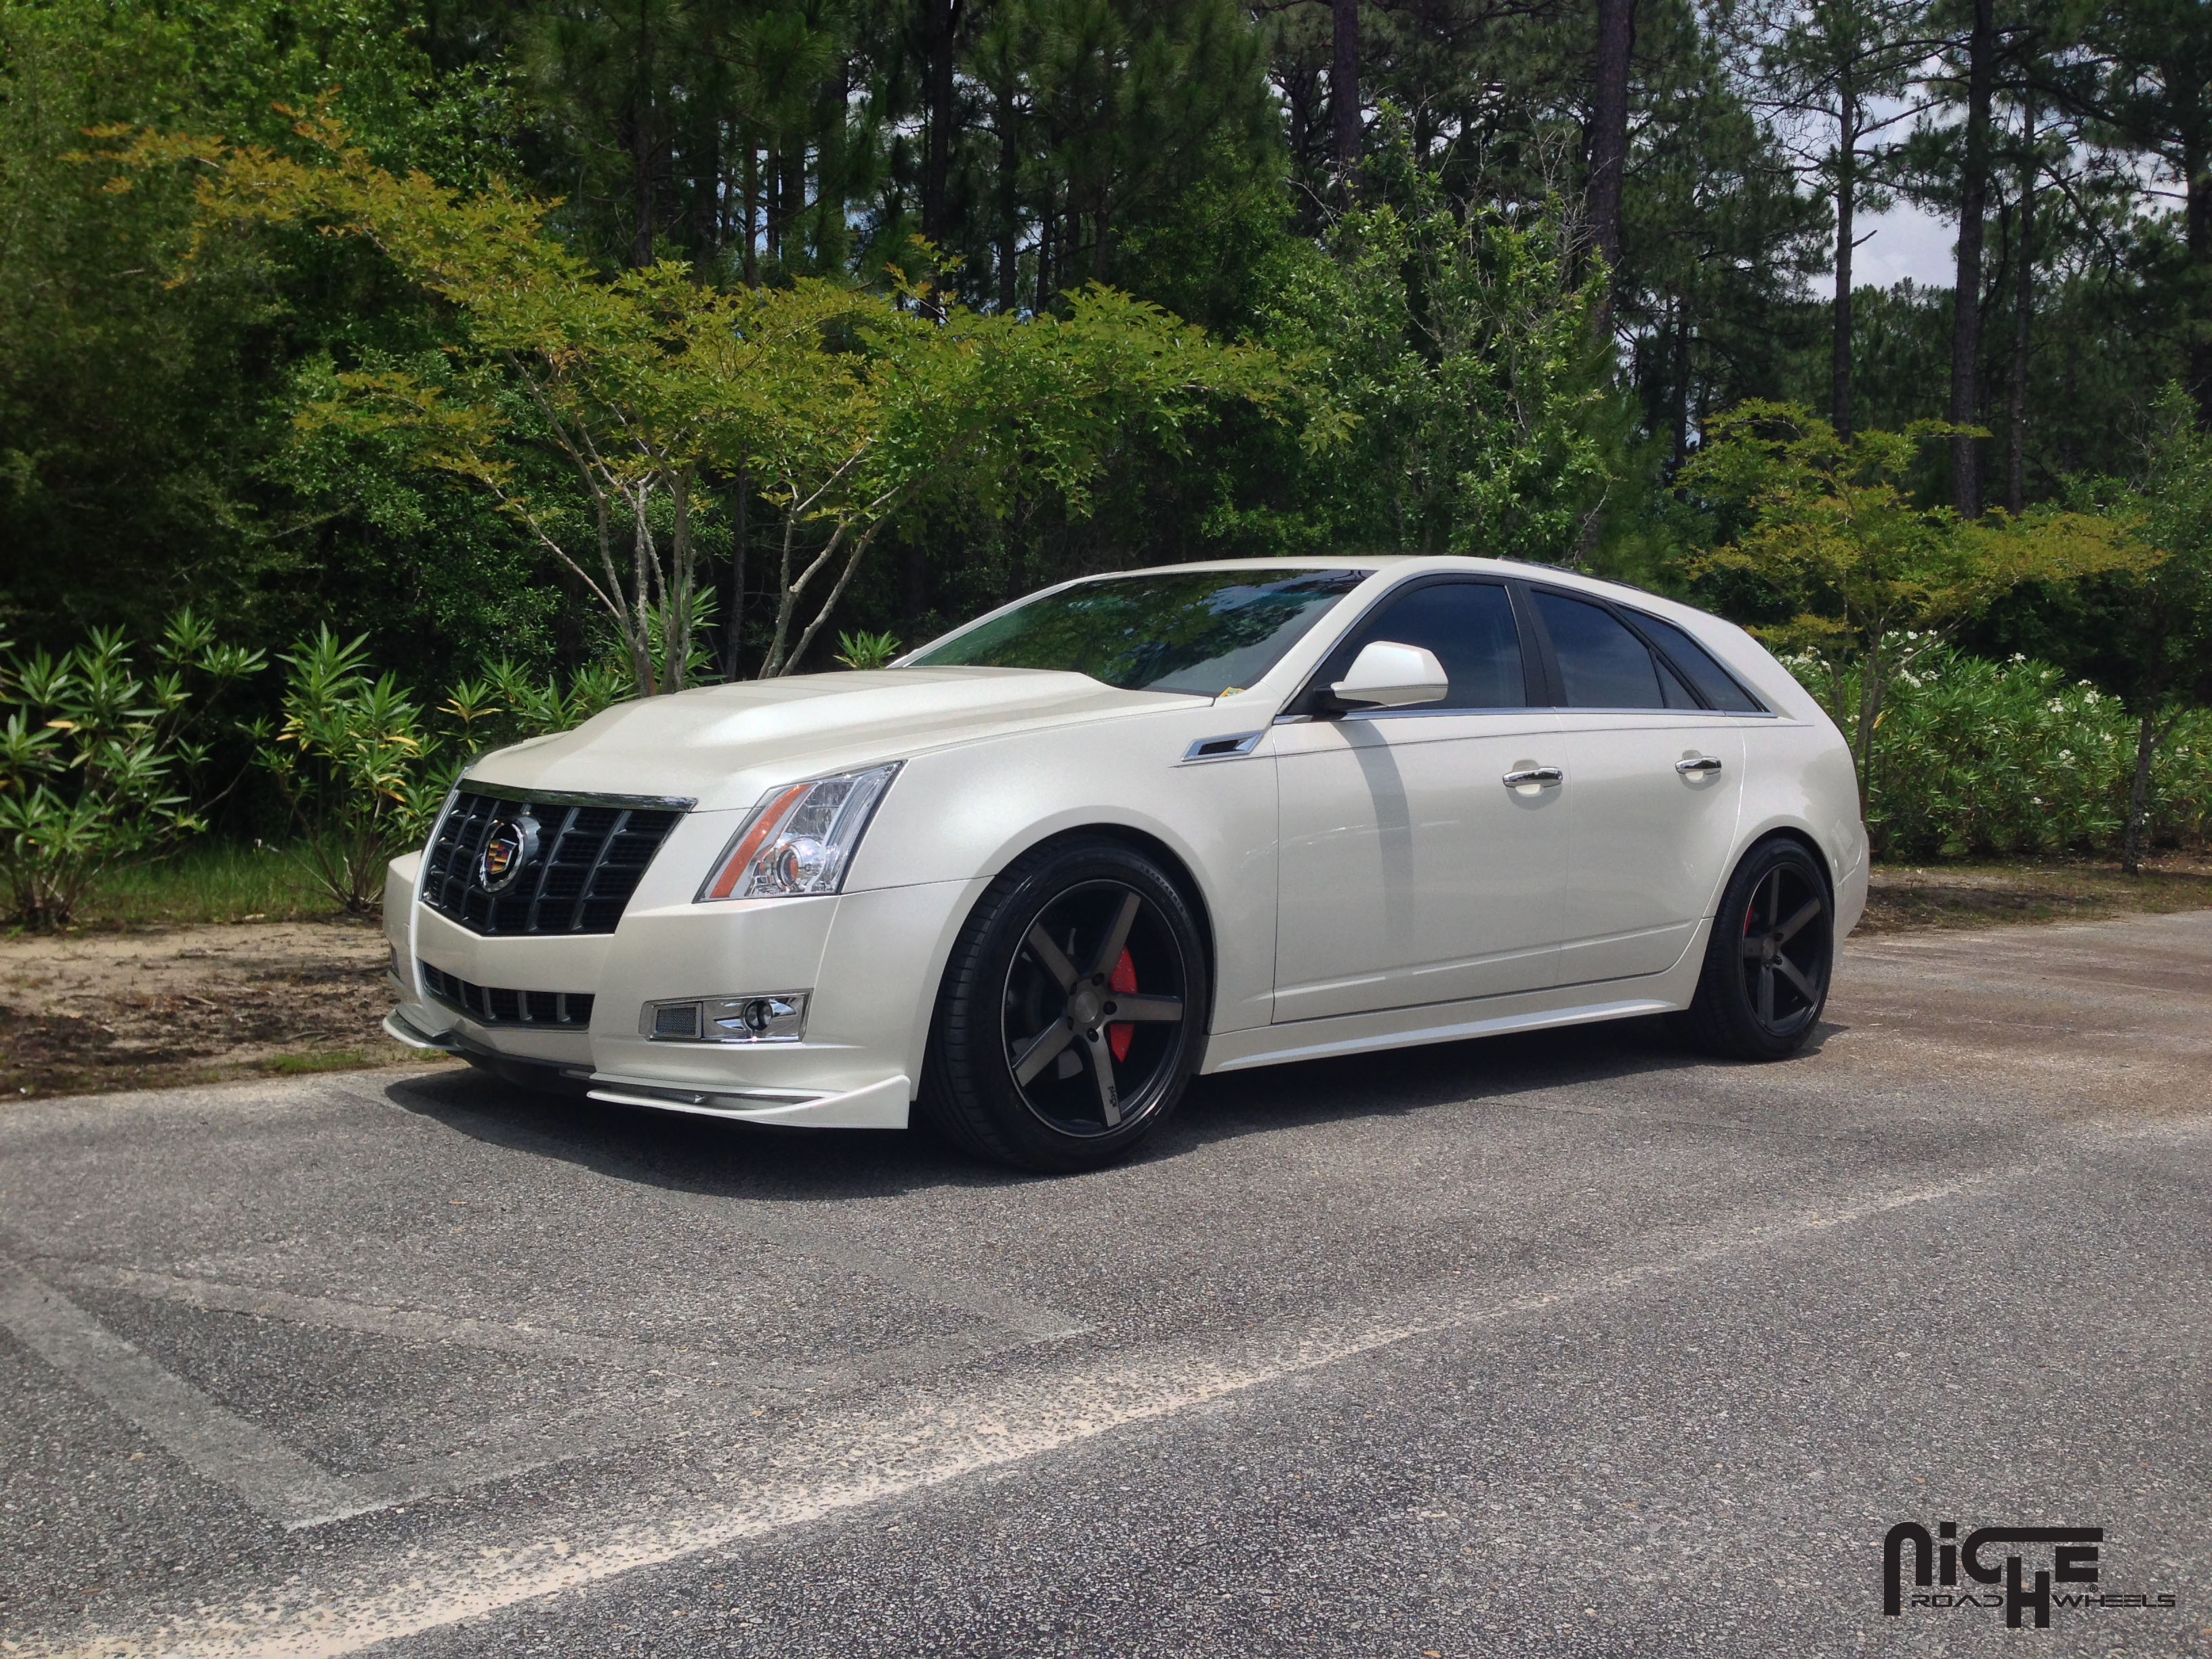 Car Cadillac Cts Wagon On Niche Sport Series Milan